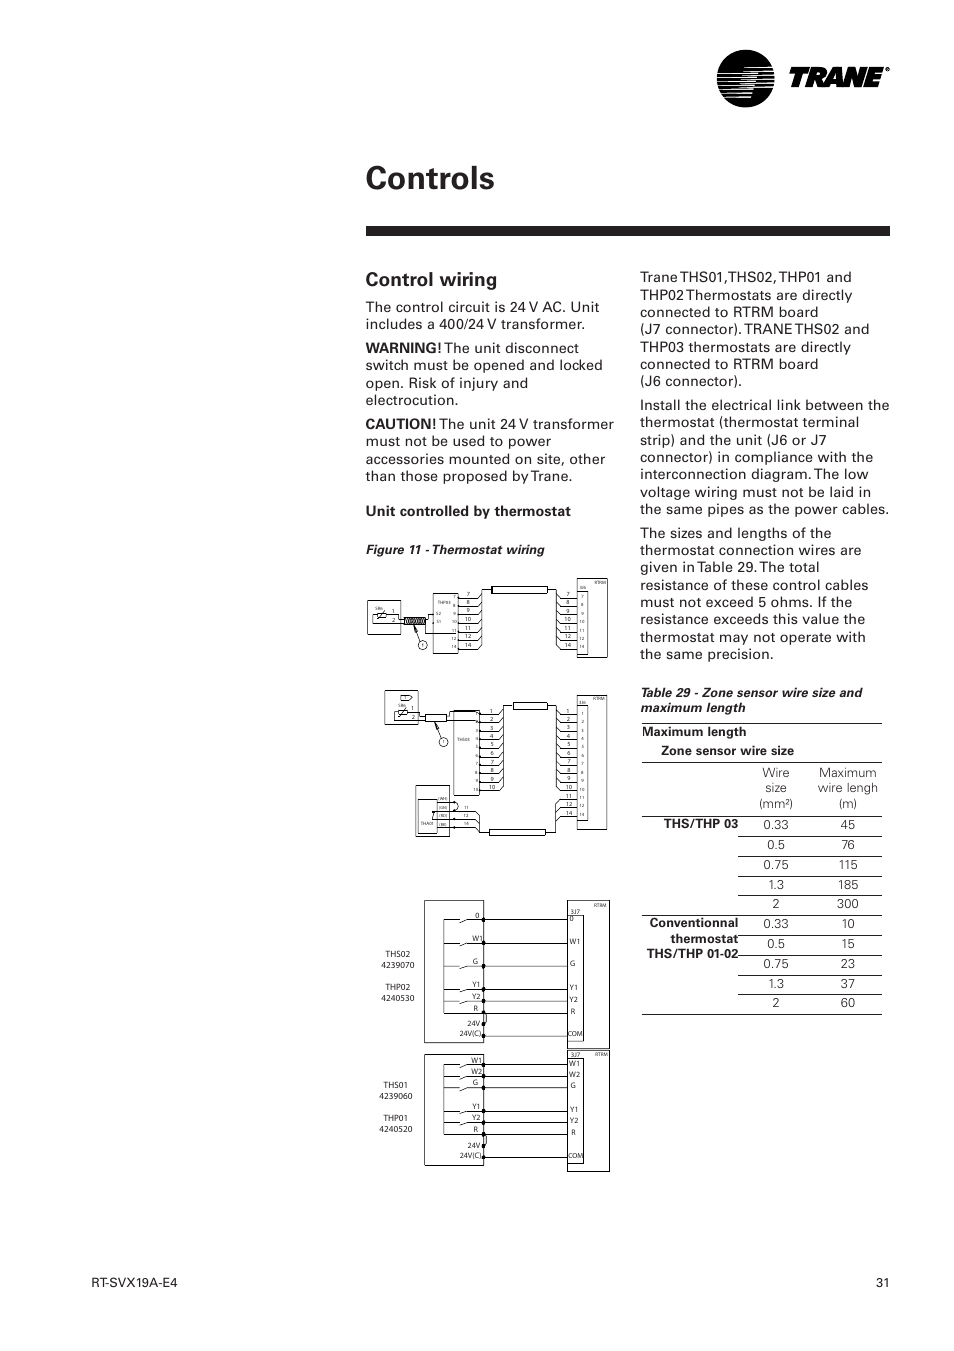 trane rt svx19a e4 page31?resize\\\\\\\\\\\\\\\\\\\\\\\\\\\\\\\=665%2C942 fascinating trane air handler wiring diagrams contemporary trane xr401 wiring diagram at creativeand.co